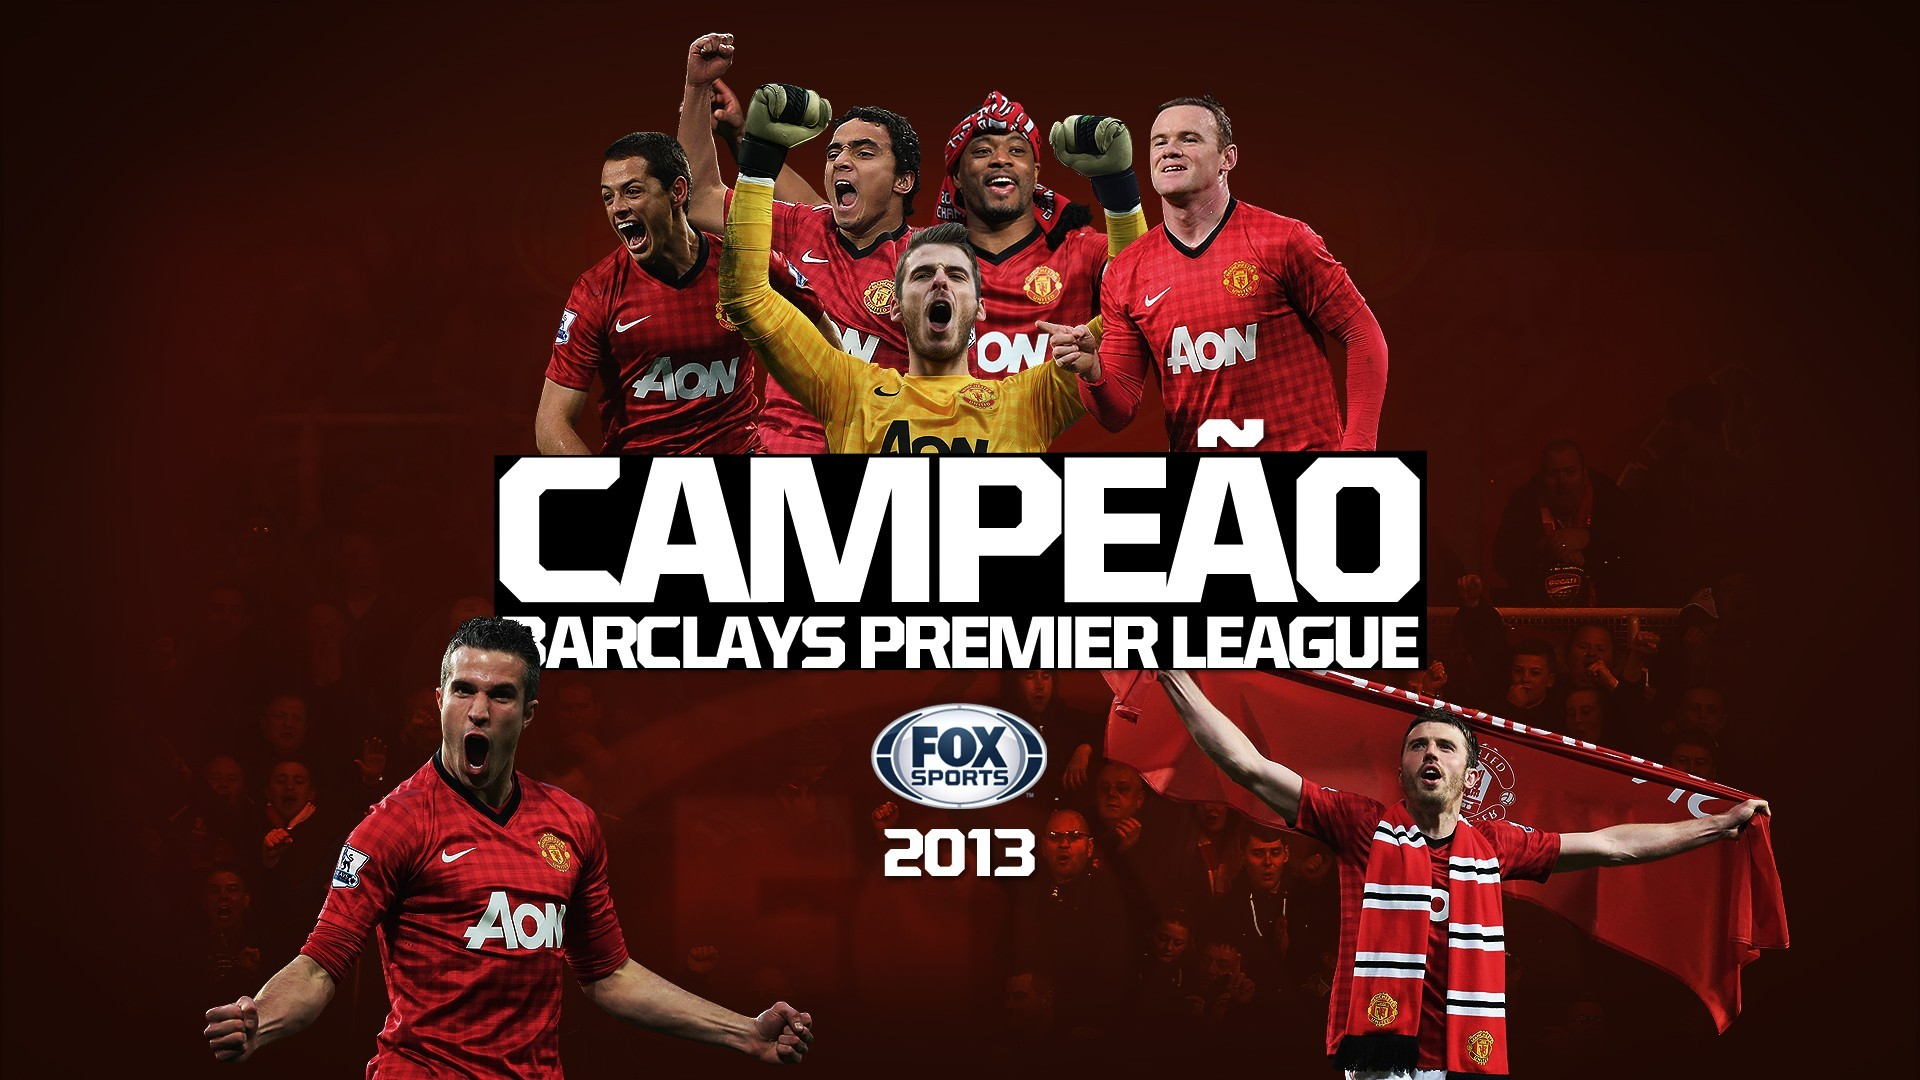 Football Manchester United Fc Red Devils Champions Teams Utd Premier League  Soccer Sports #wallpapers #